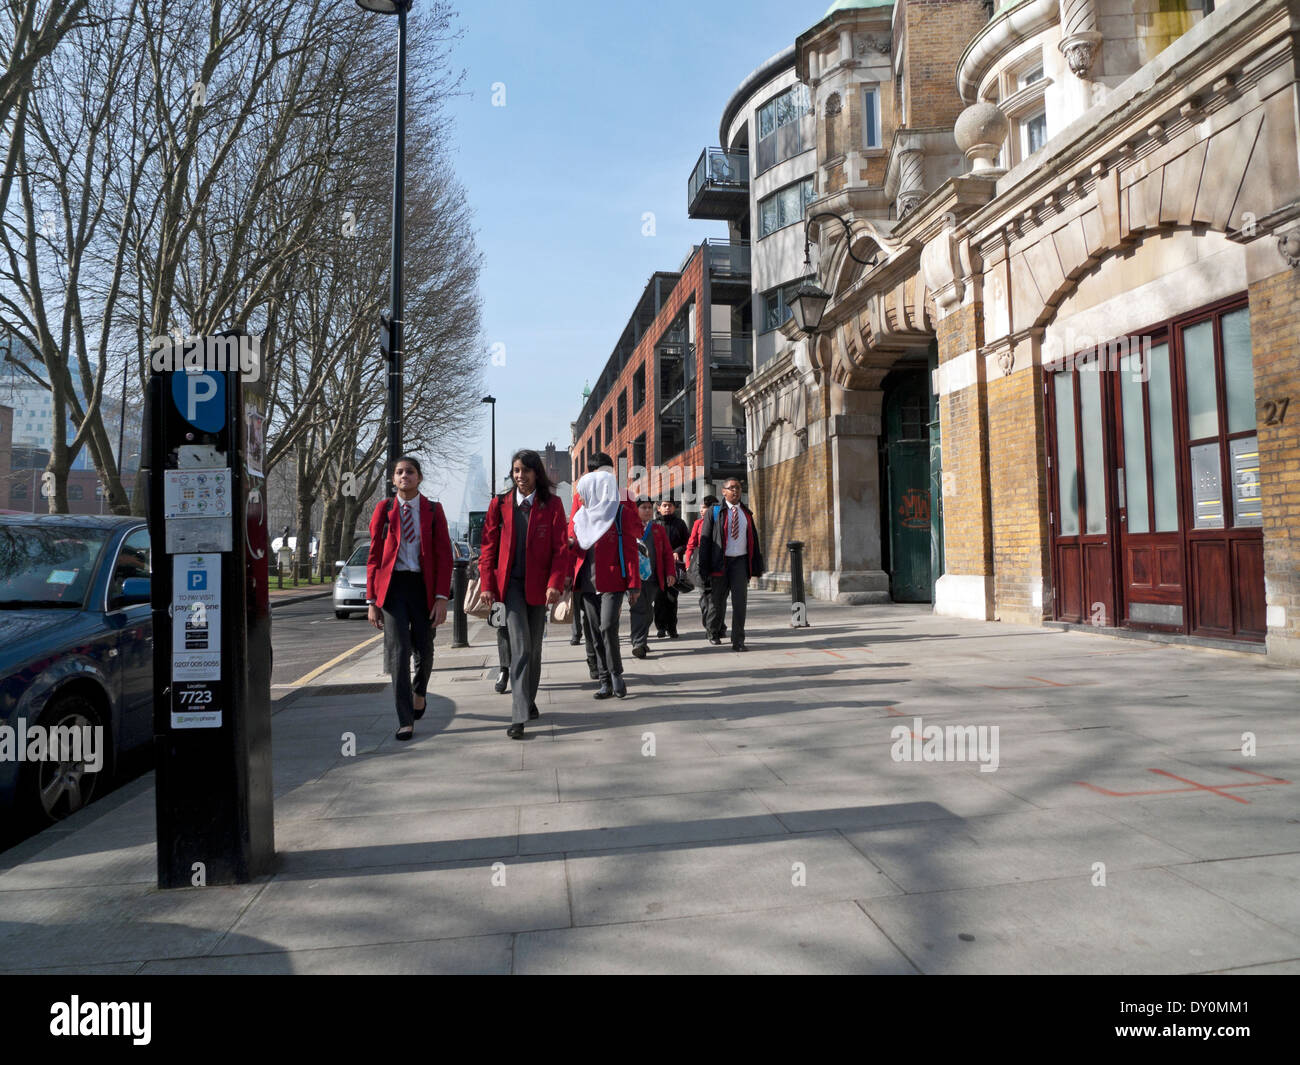 Schoolchildren in uniform walking together along Mile End Road in Whitechapel London KATHY DEWITT - Stock Image